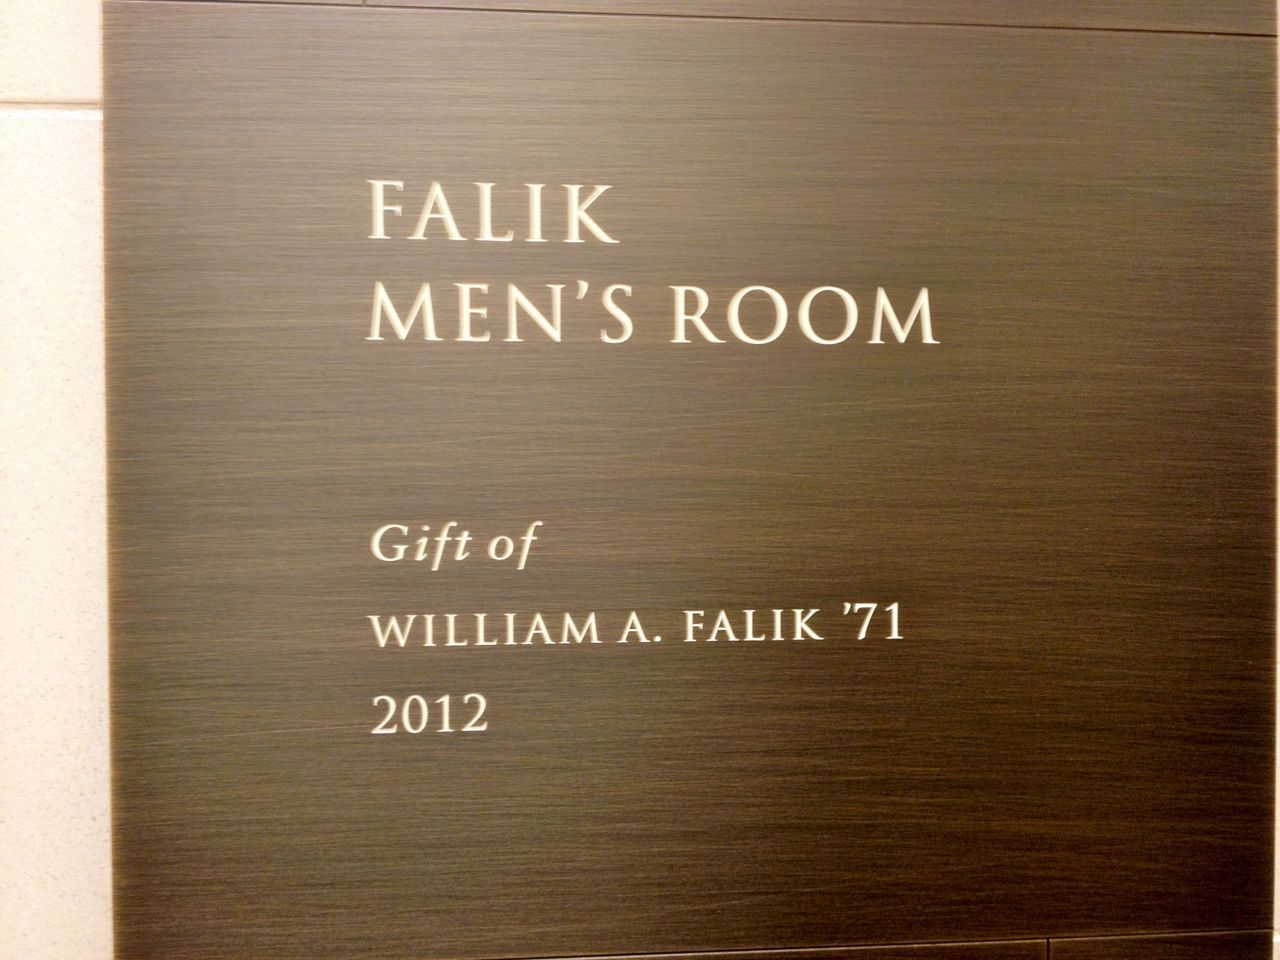 Who says Harvard doesn't have a sense of humor? Alum William Falik gave Harvard $100,000 and said that, with his name, all he's ever been able to get named for him was a restroom. Then Dean Elena Kagan took him up on it and, in the shiny new Wasserstein building up on the 2nd floor, is the Falik Mens Room.